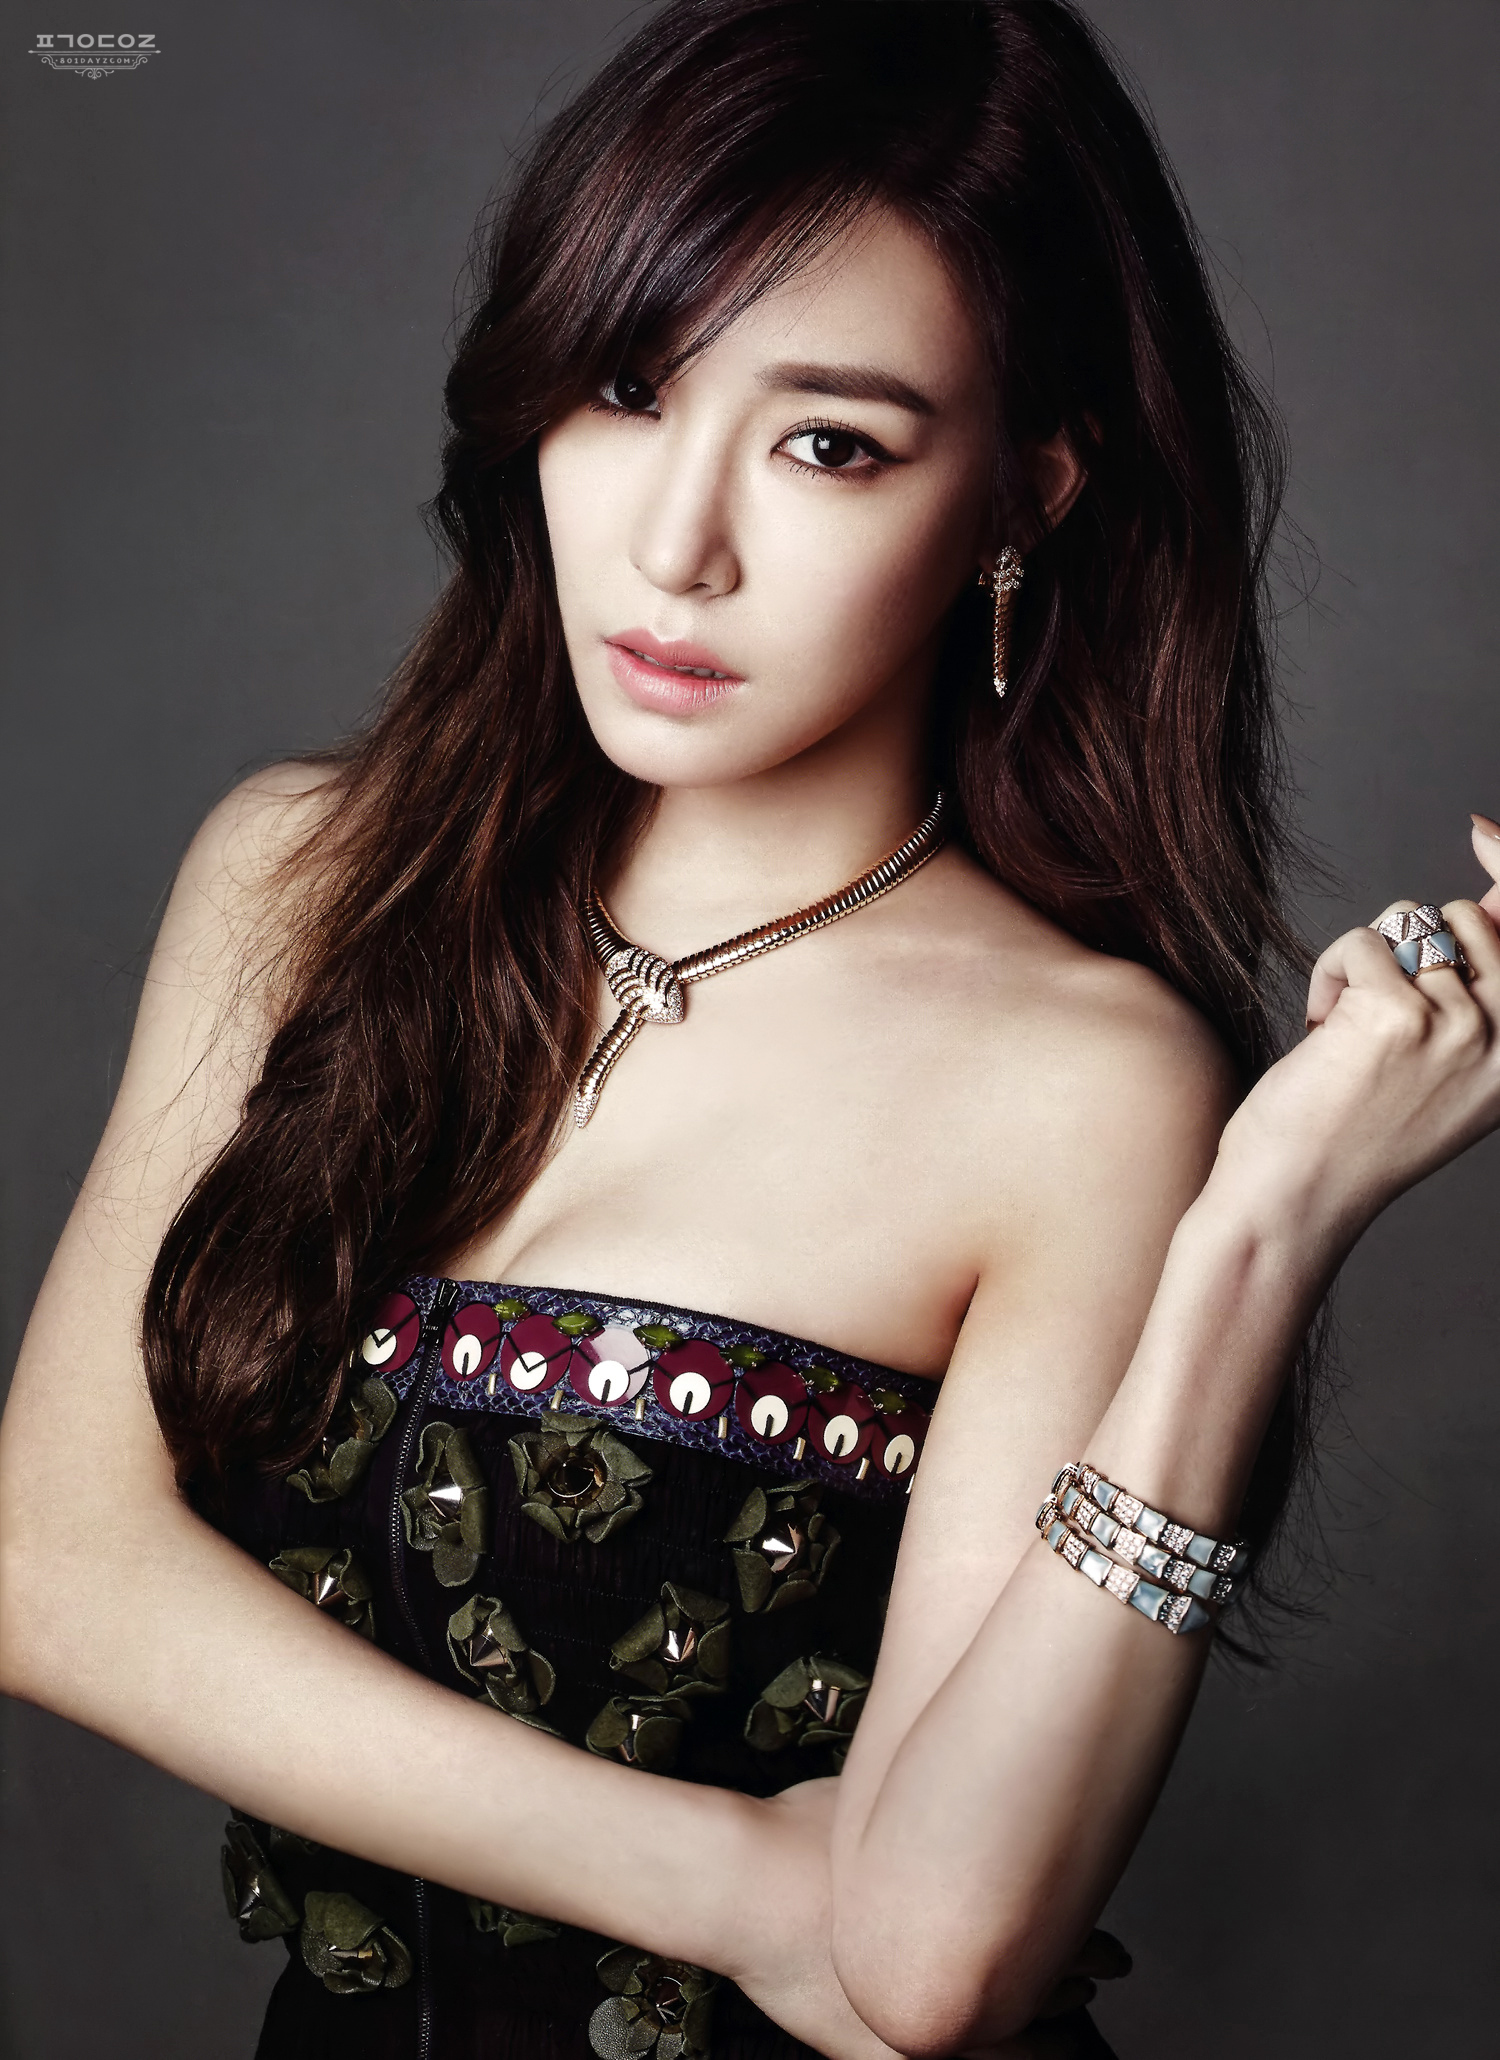 Stephanie young 11